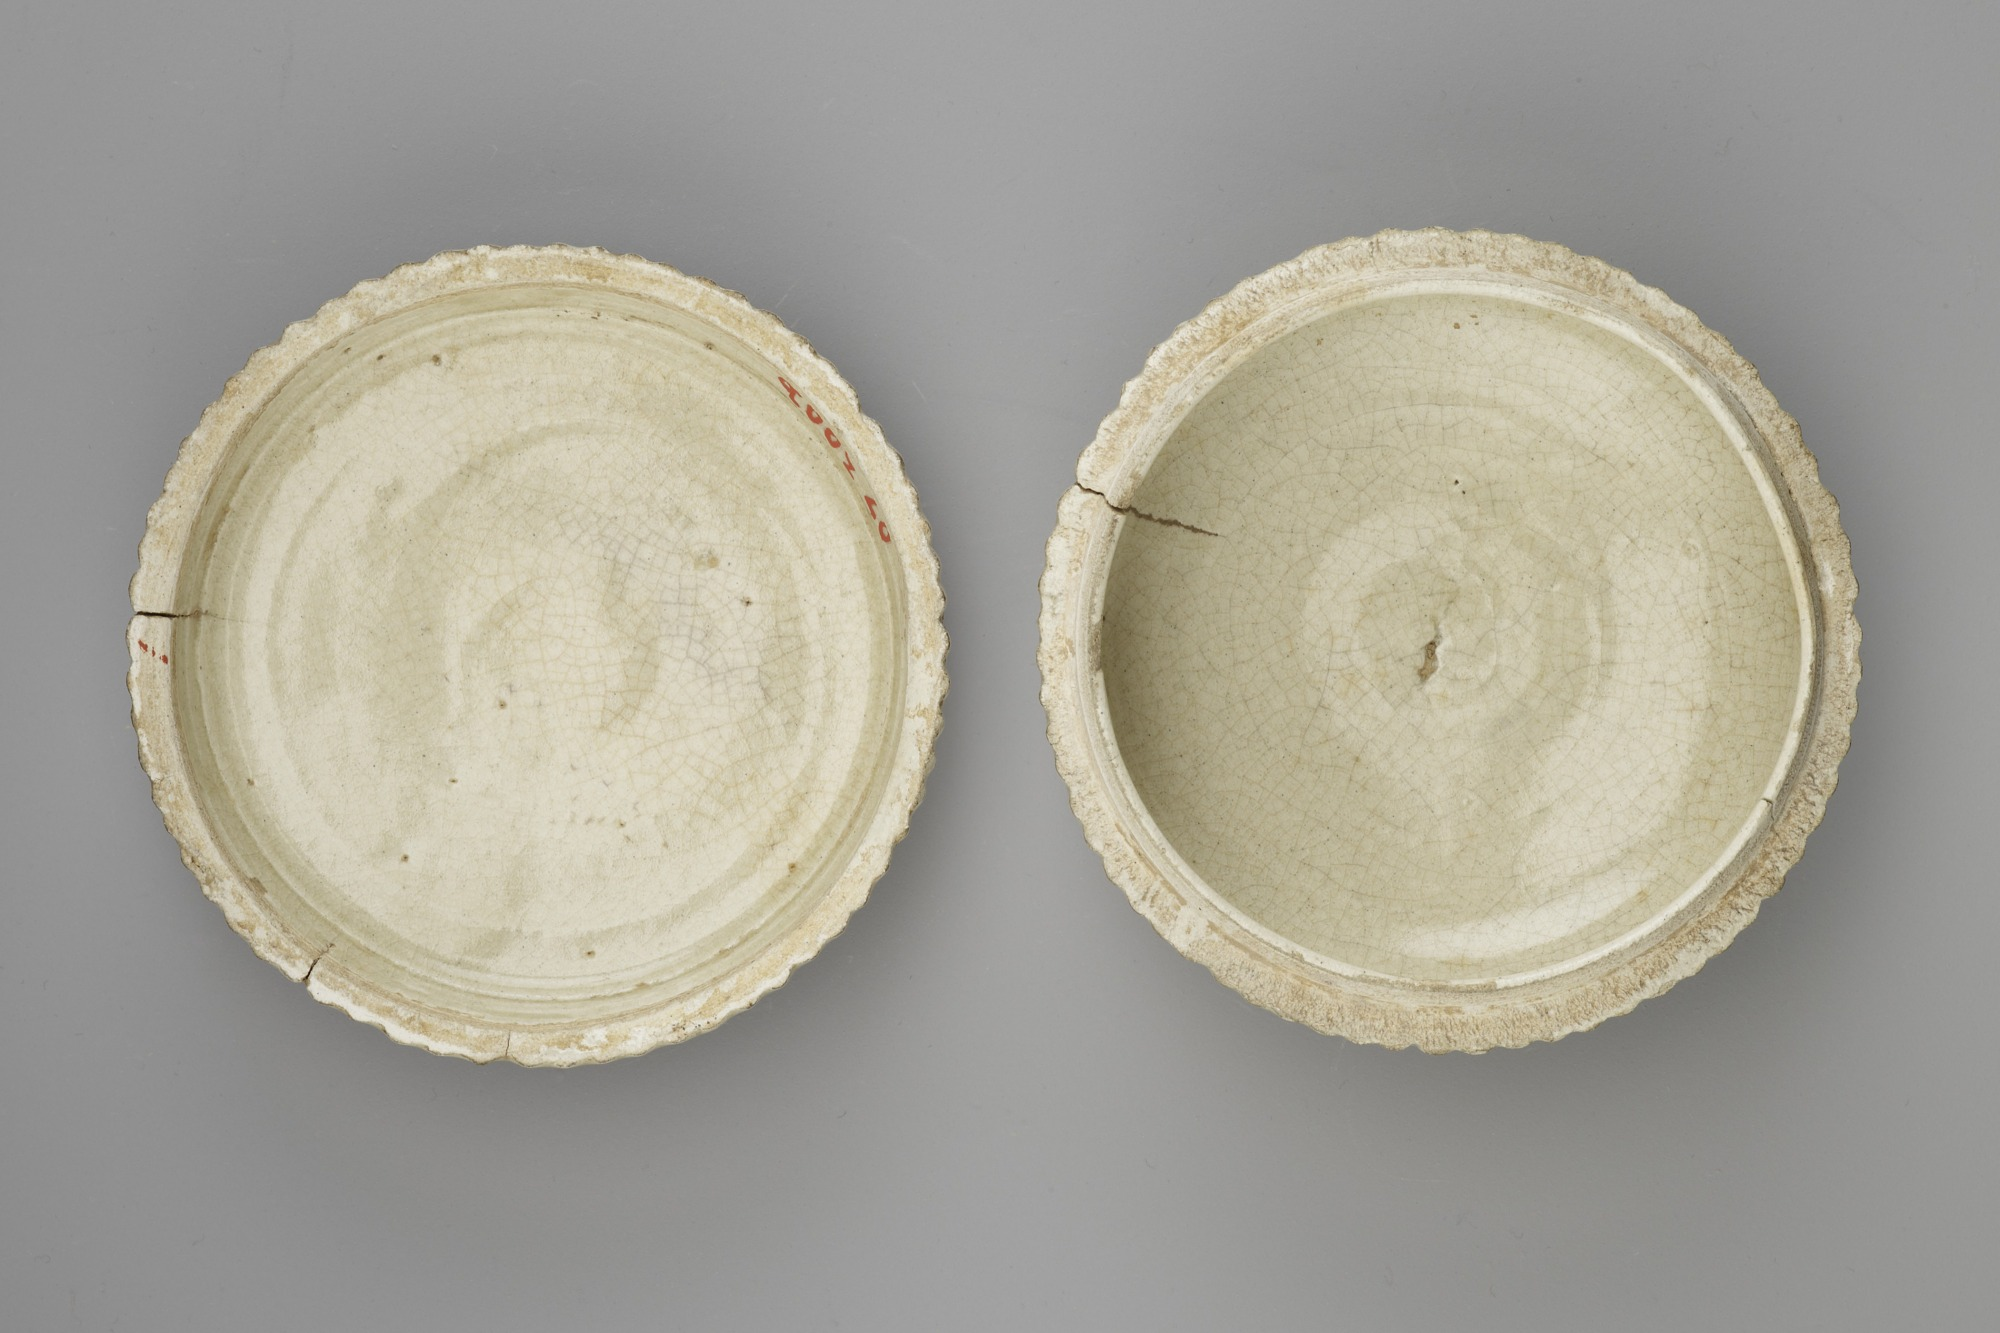 interior and lid